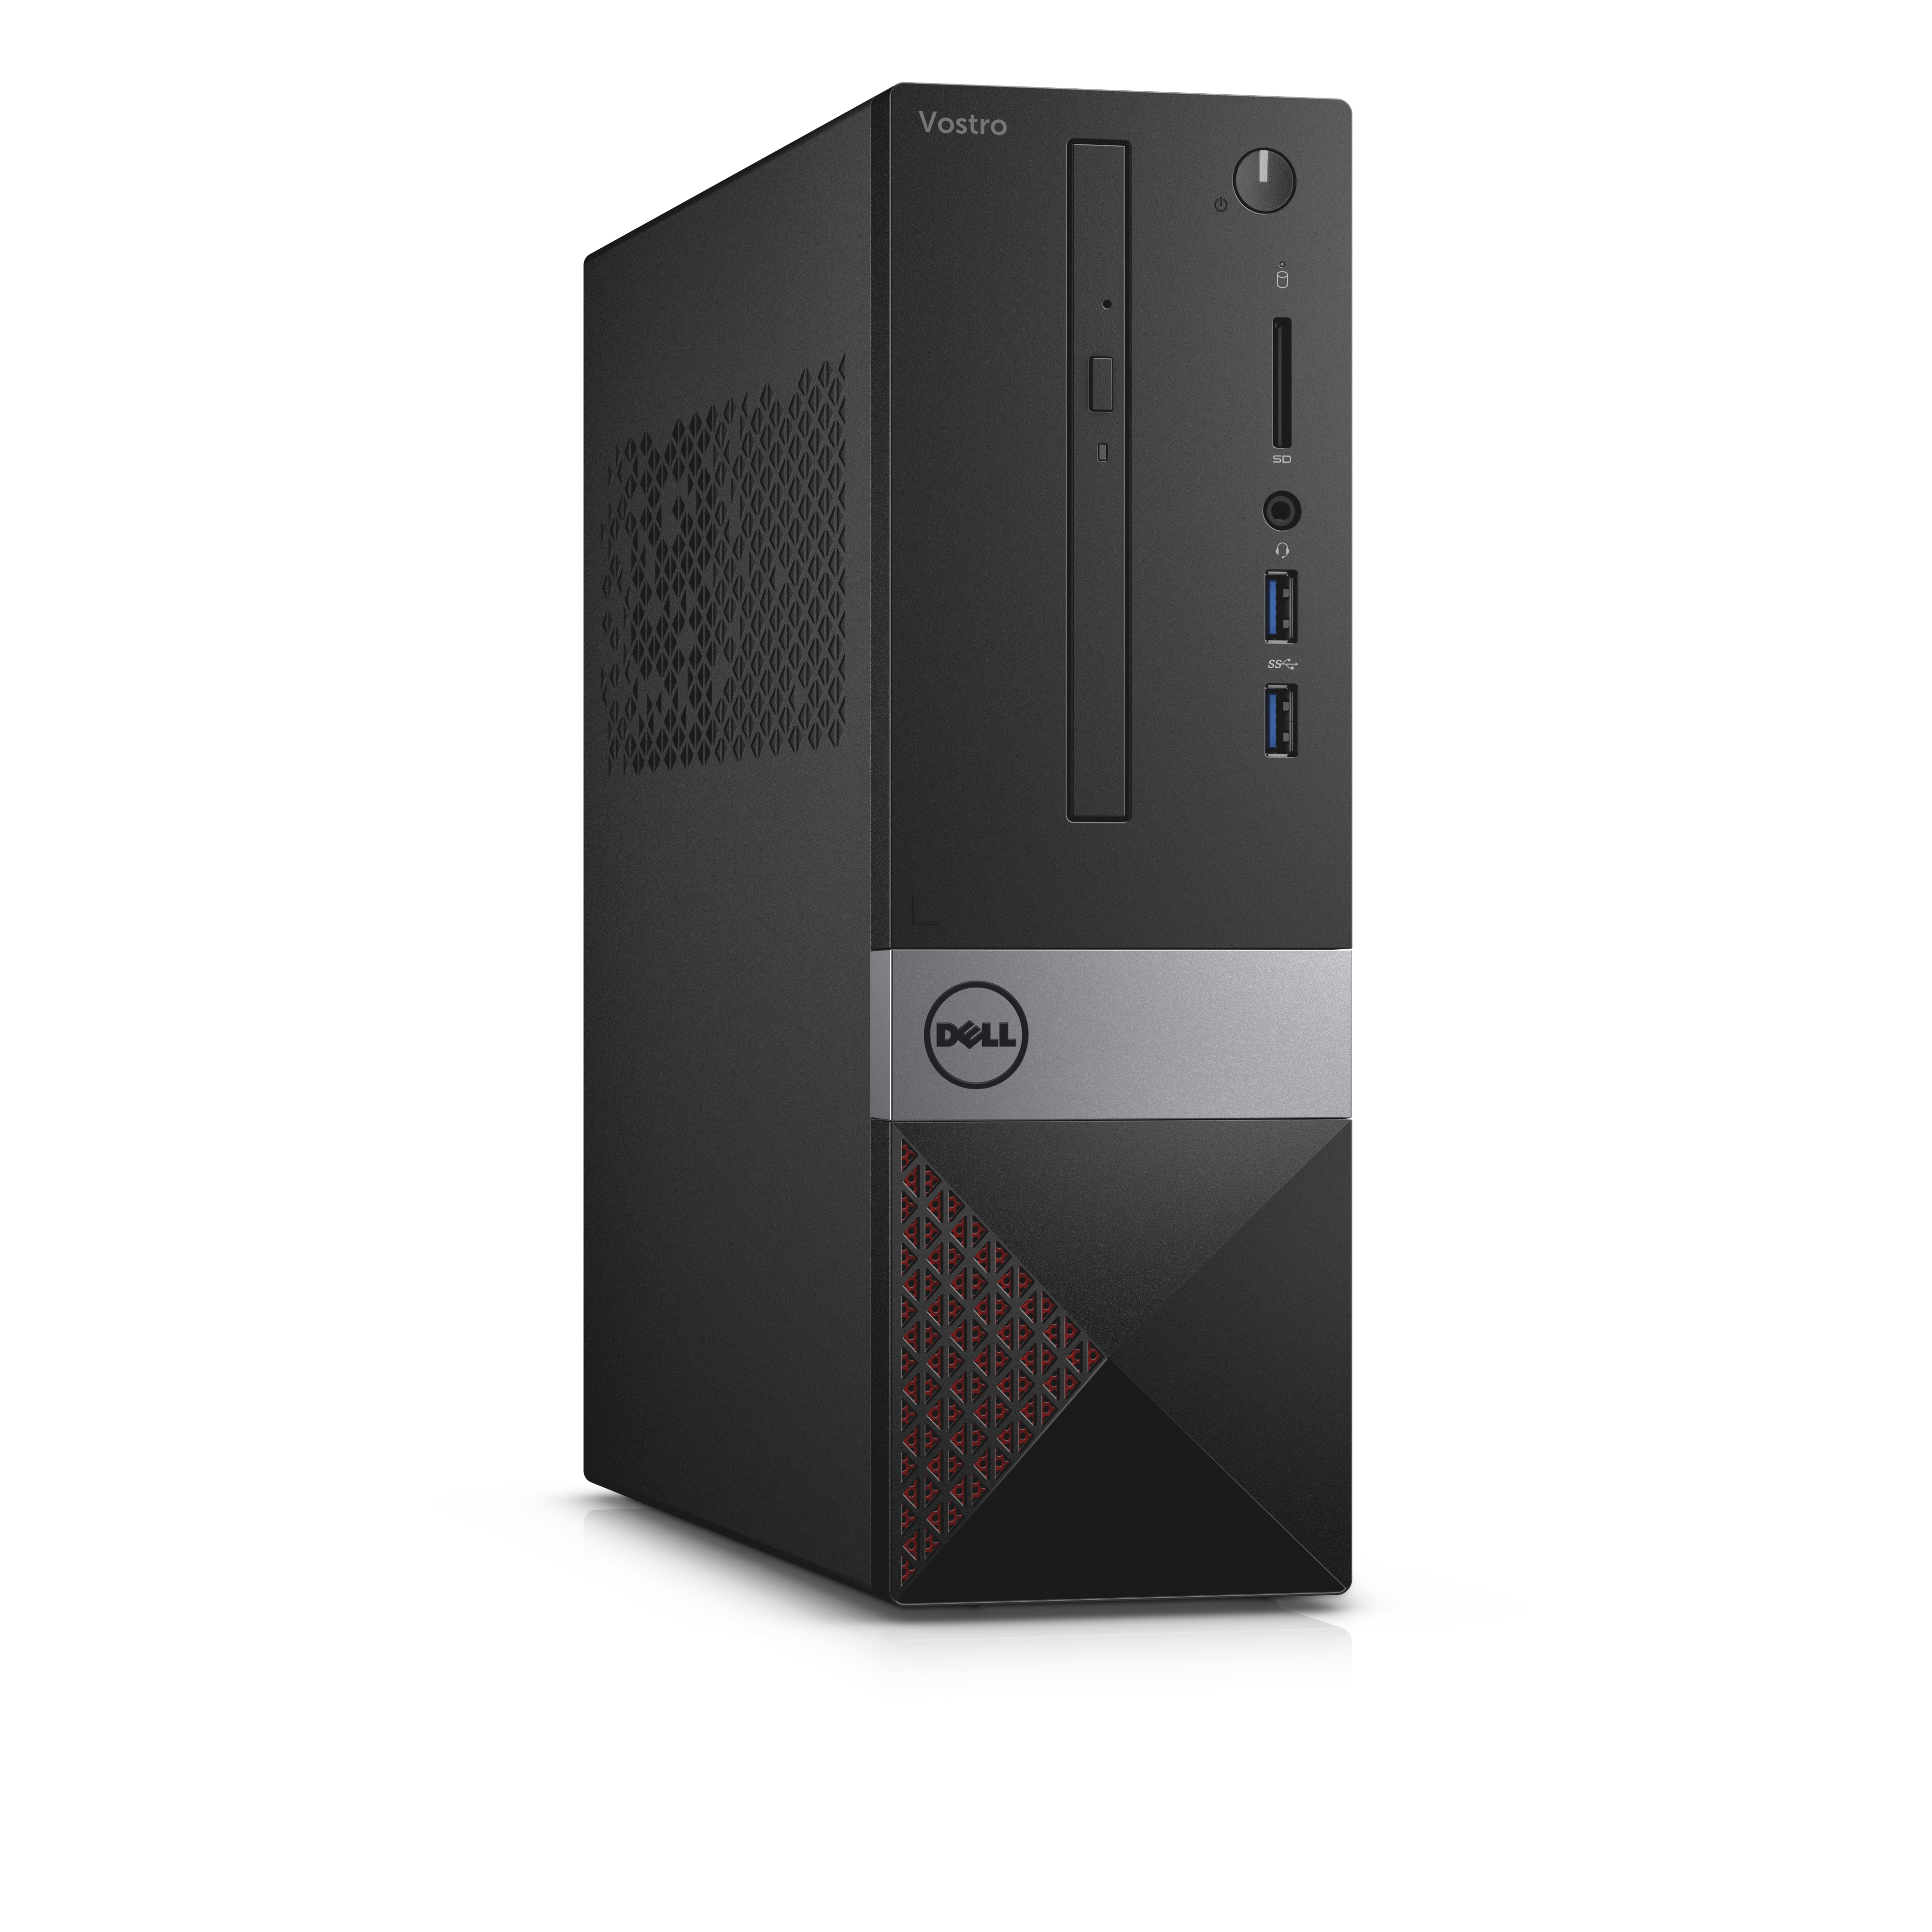 Marvelous Dell Vostro 3250 Sff Gx332 Core I3 6100 4Gb 500Gb Dvdrw Win 10 Pro Beutiful Home Inspiration Papxelindsey Bellcom